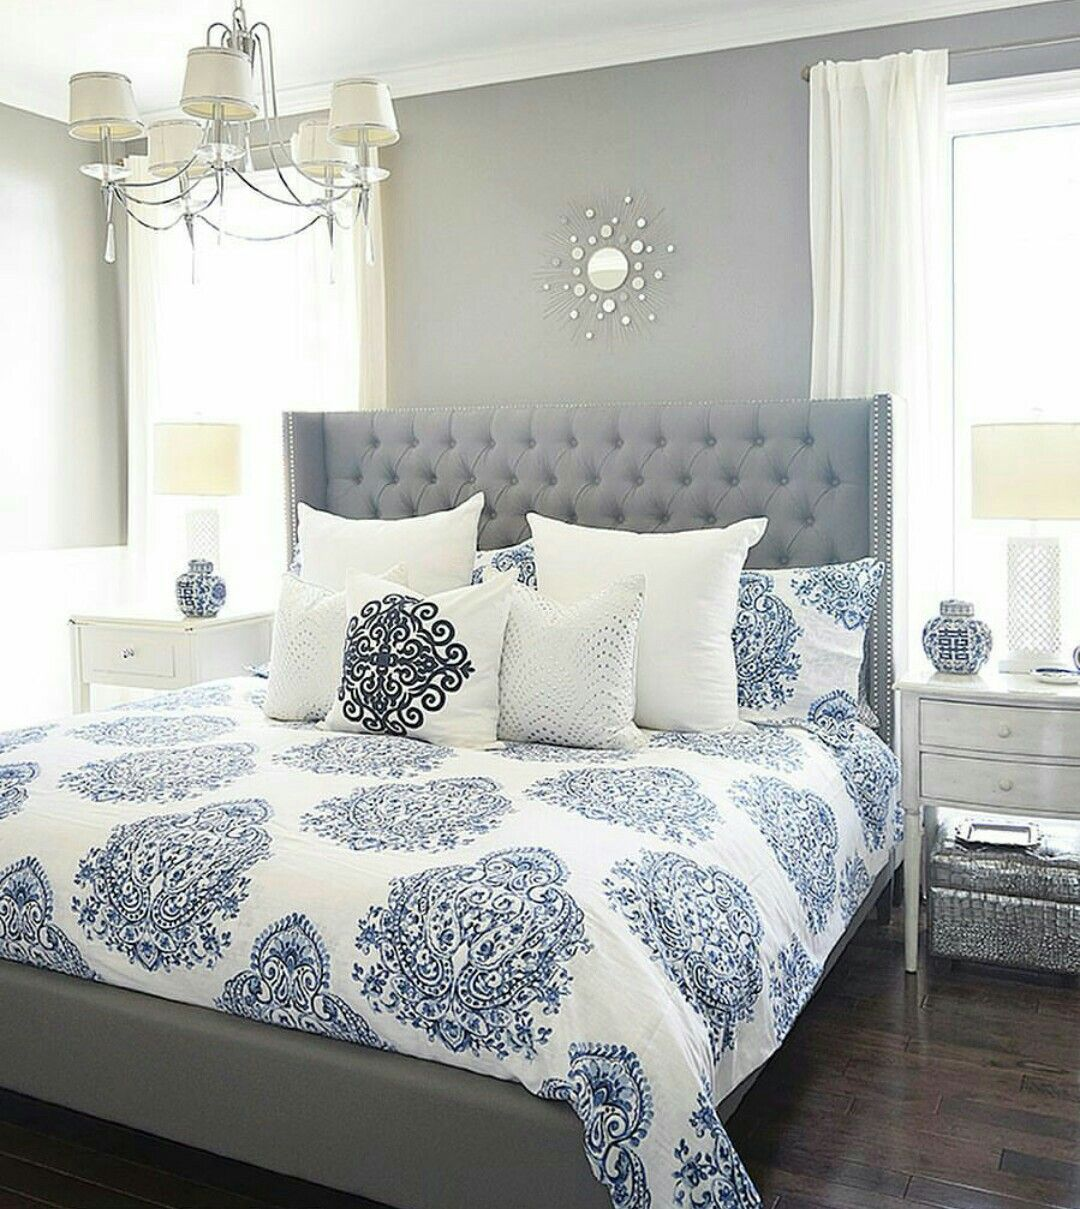 Master bedroom navy blue  Pin by Ale Rocst on Home  Pinterest  Bedrooms Master bedroom and Room